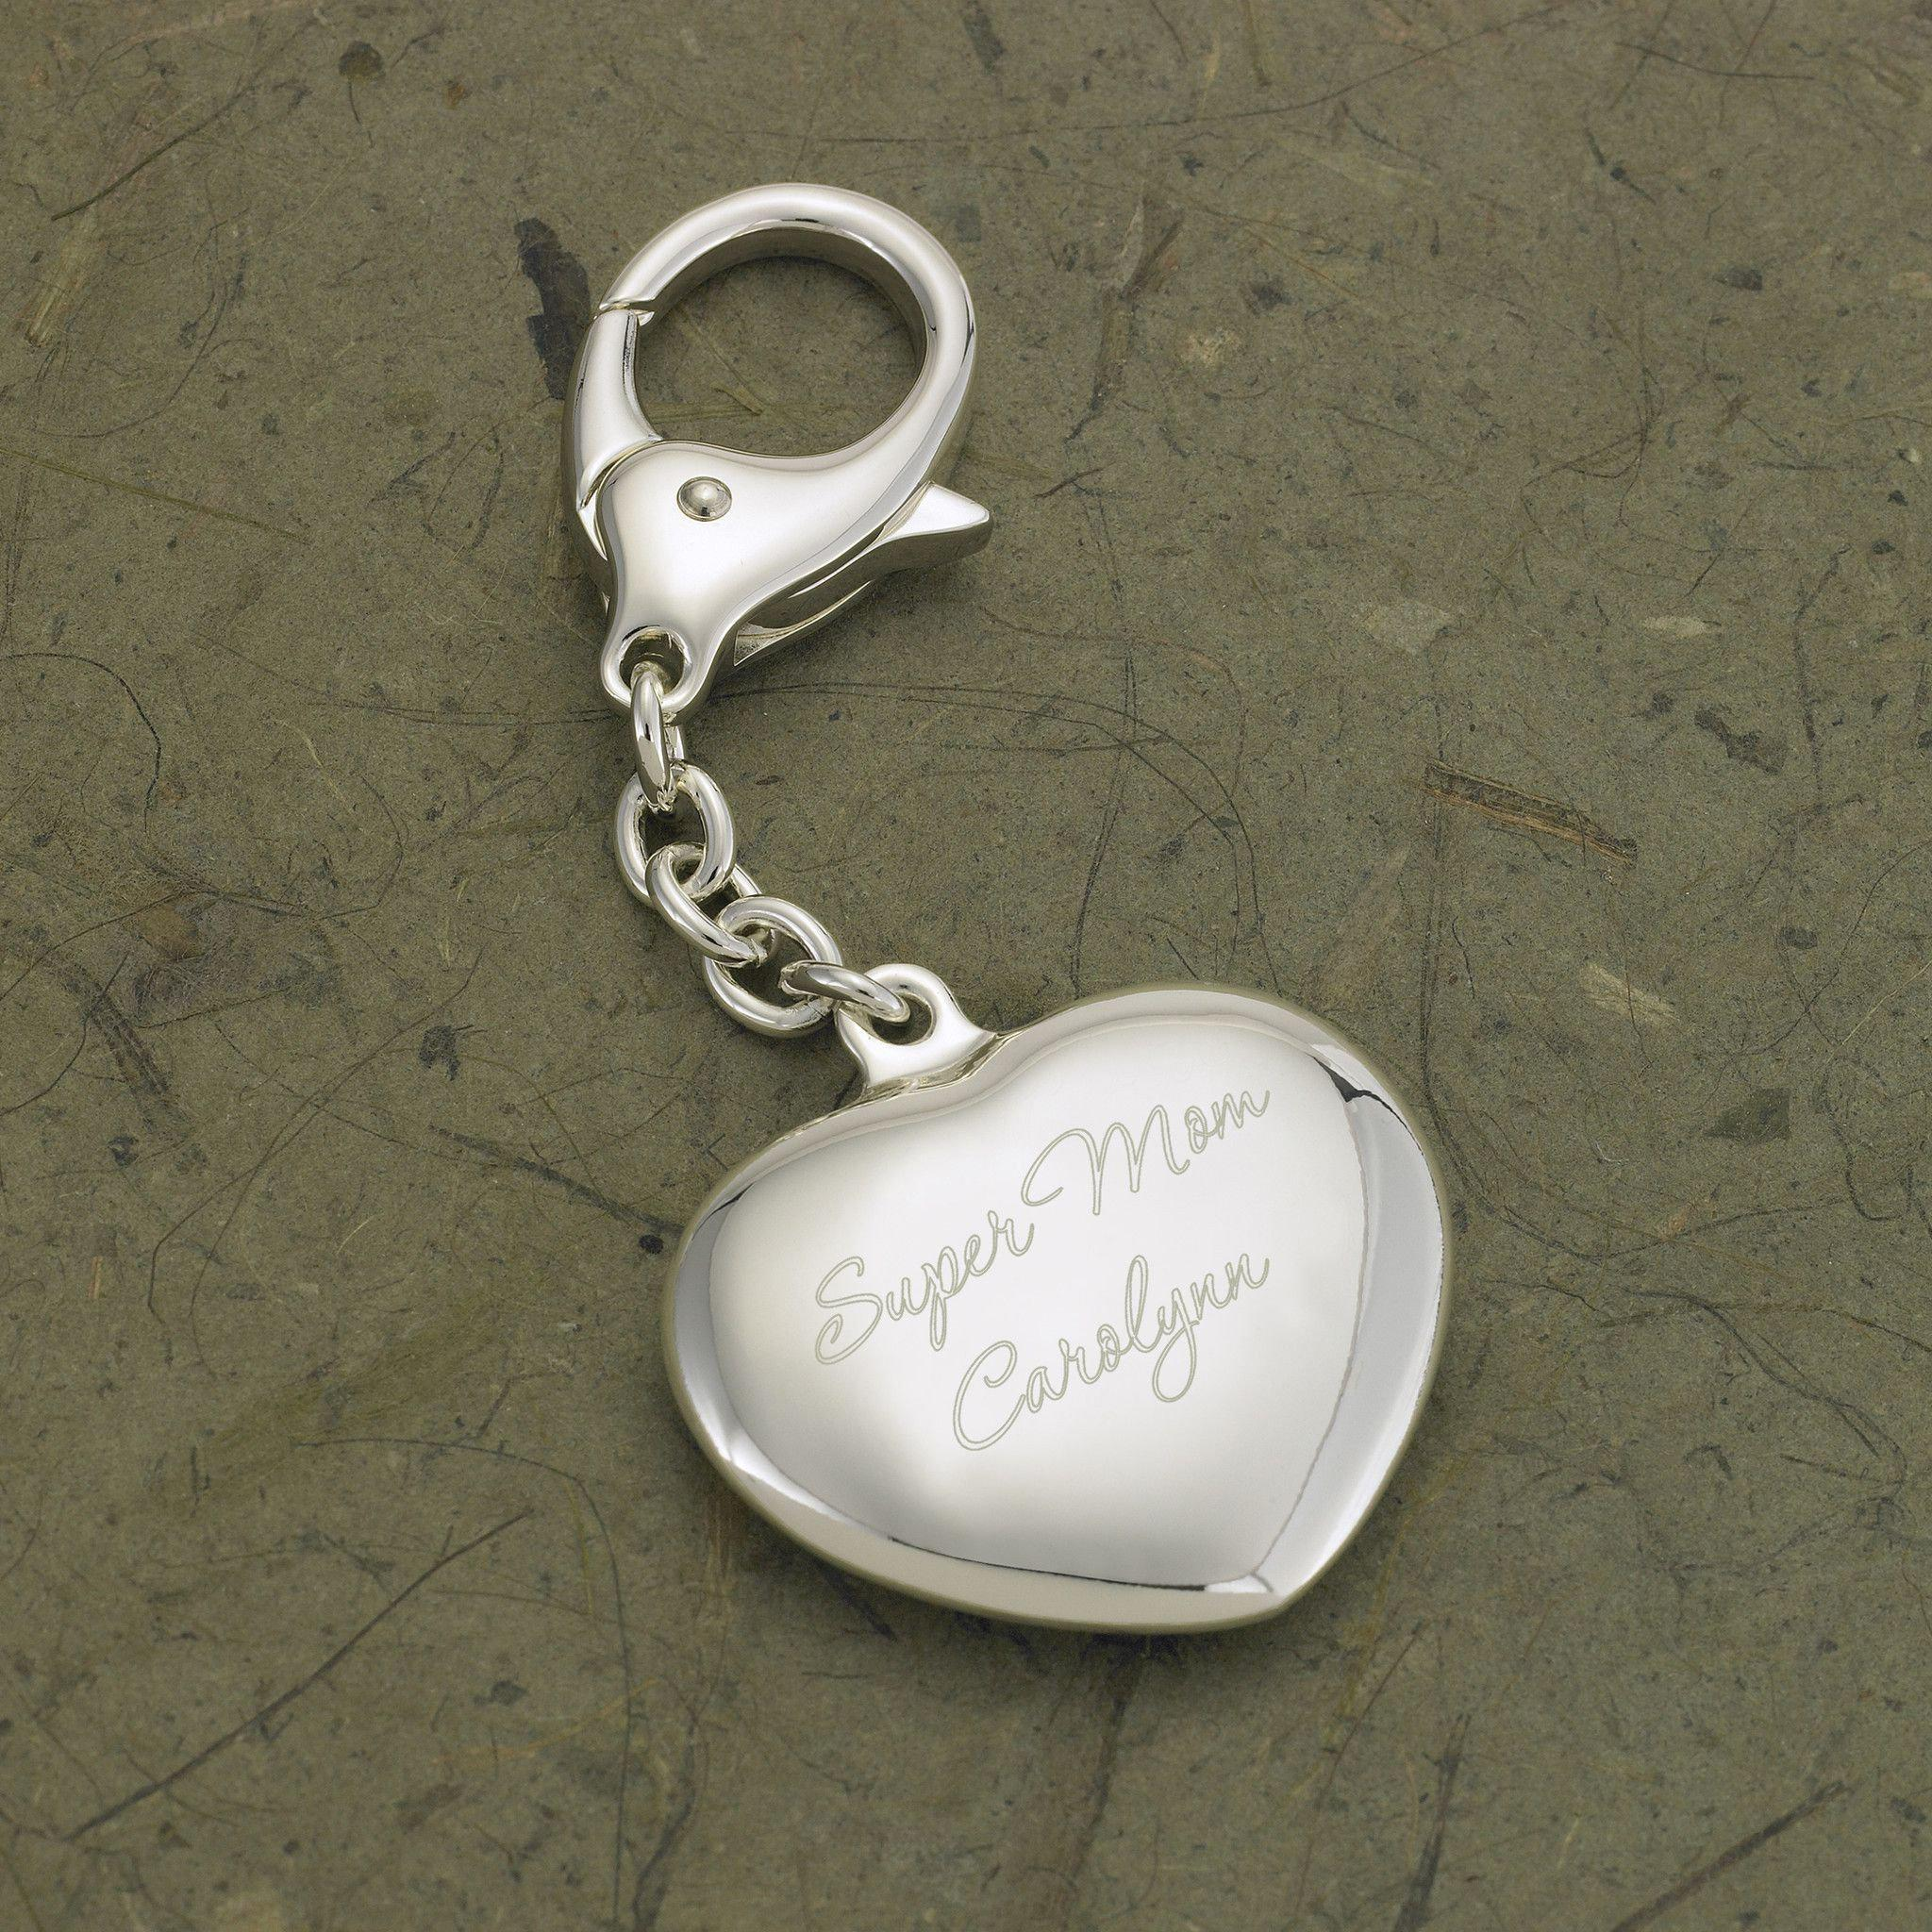 Personalized-Keychain-Silver-Plated-Heart-Shaped-Gifts-for-Her